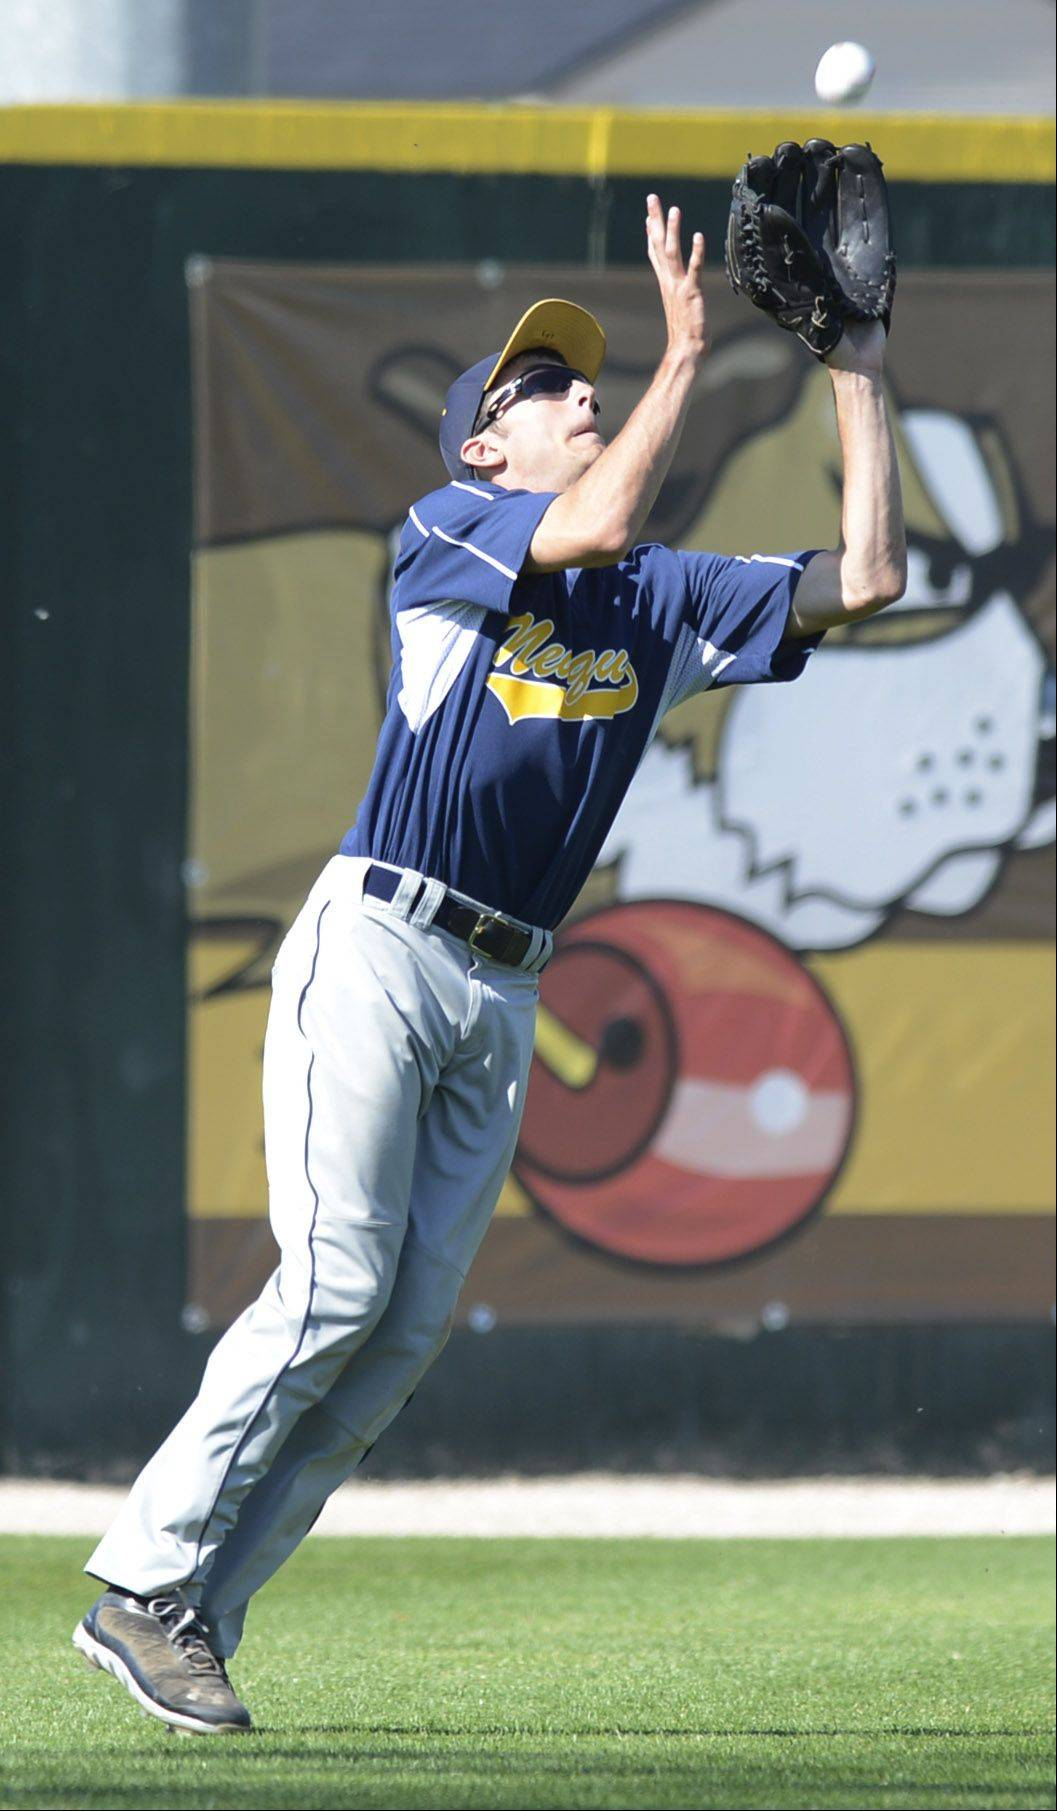 Neuqua Valley left fielder Josh Piotrowski catches a fly ball during the top of the seventh inning during the Class 4A state baseball semifinals against Mt. Carmel at Silver Cross Field in Joliet Friday.